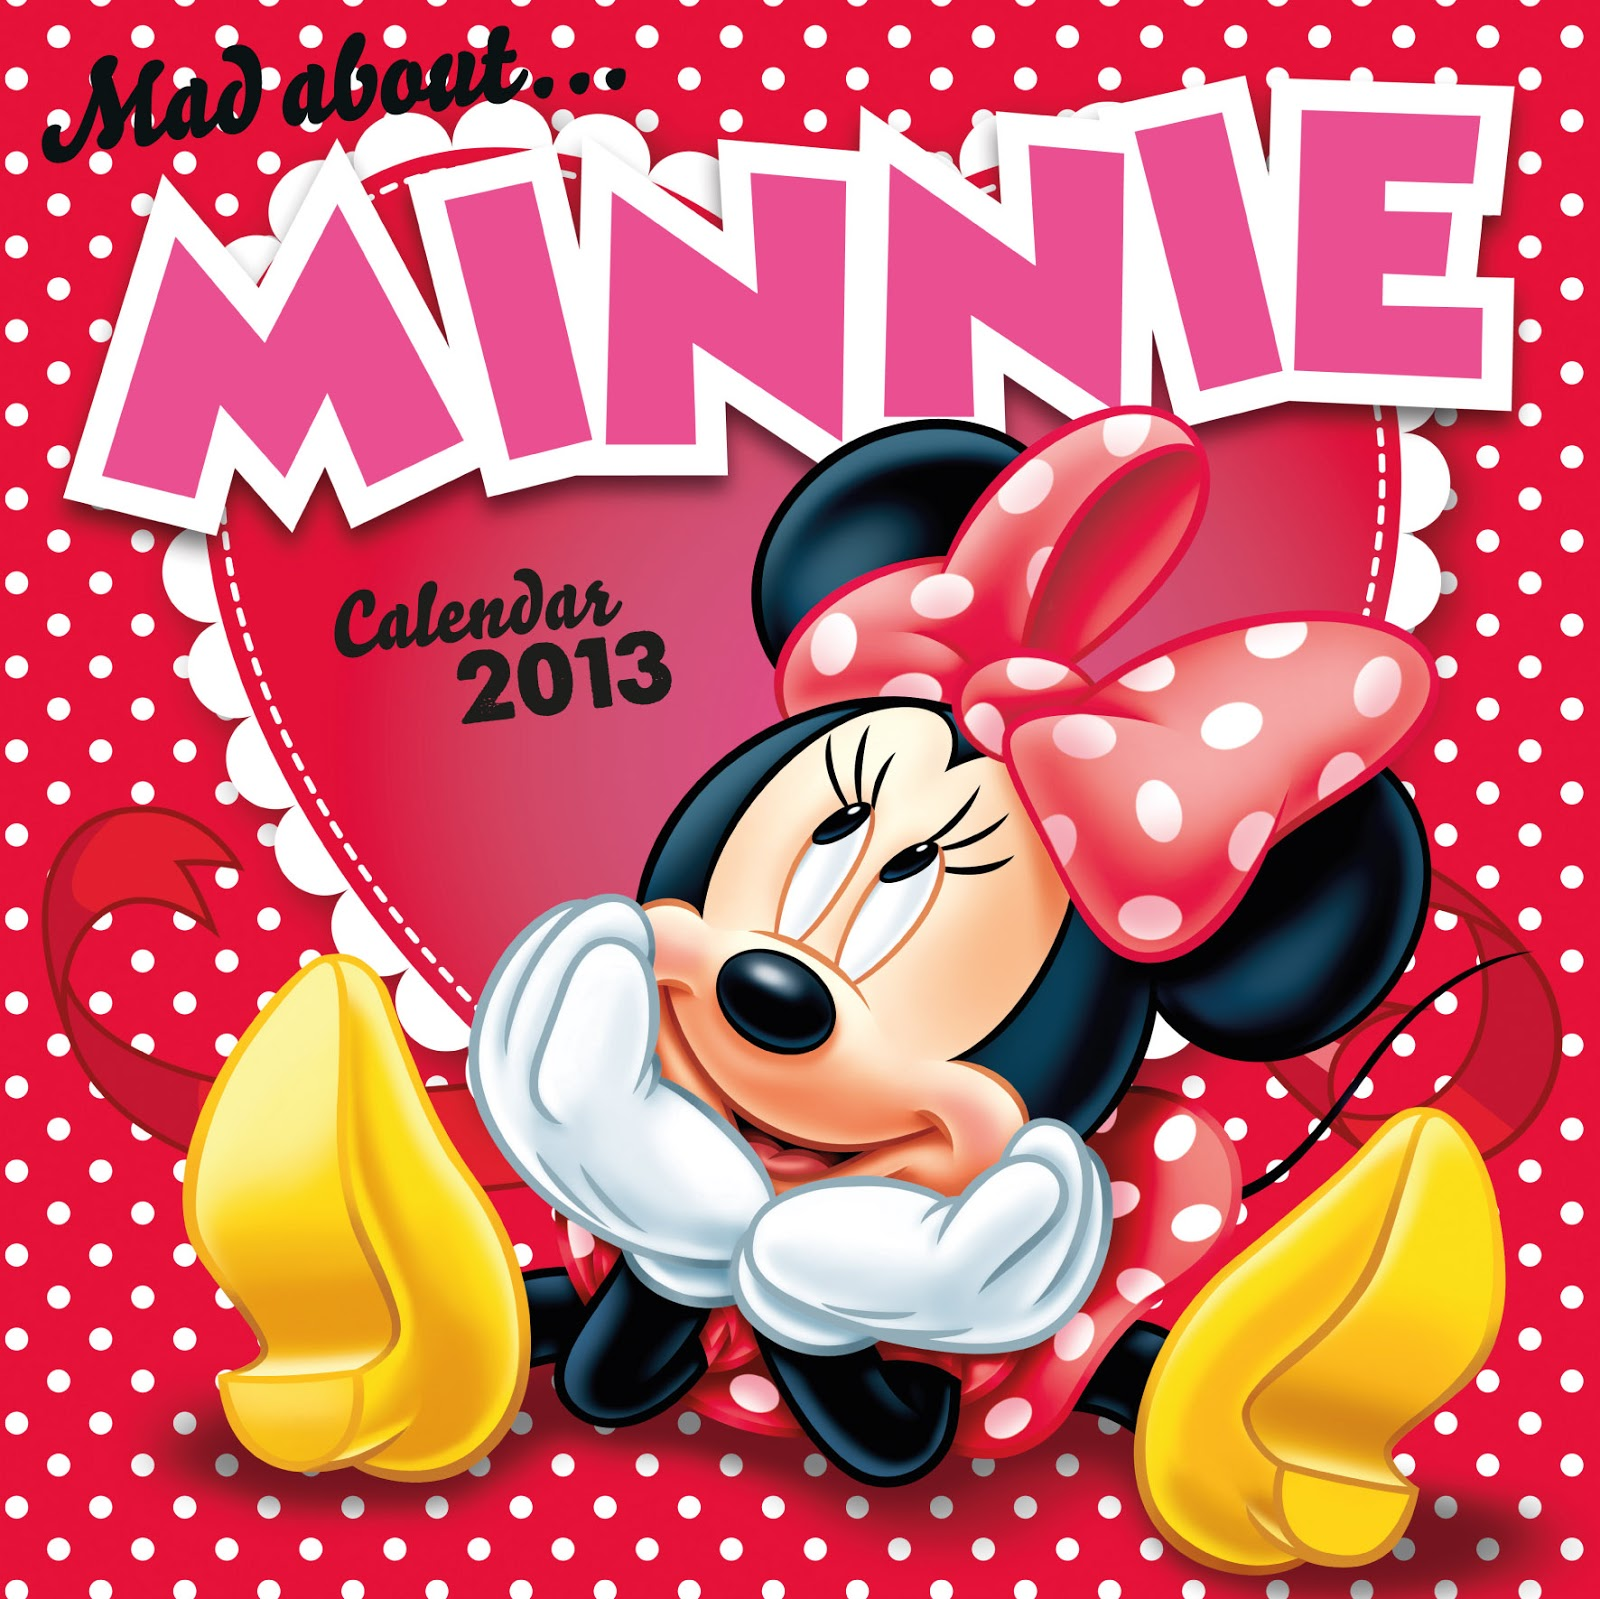 Minnie Mouse Wallpapers | HD Wallpapers Pics